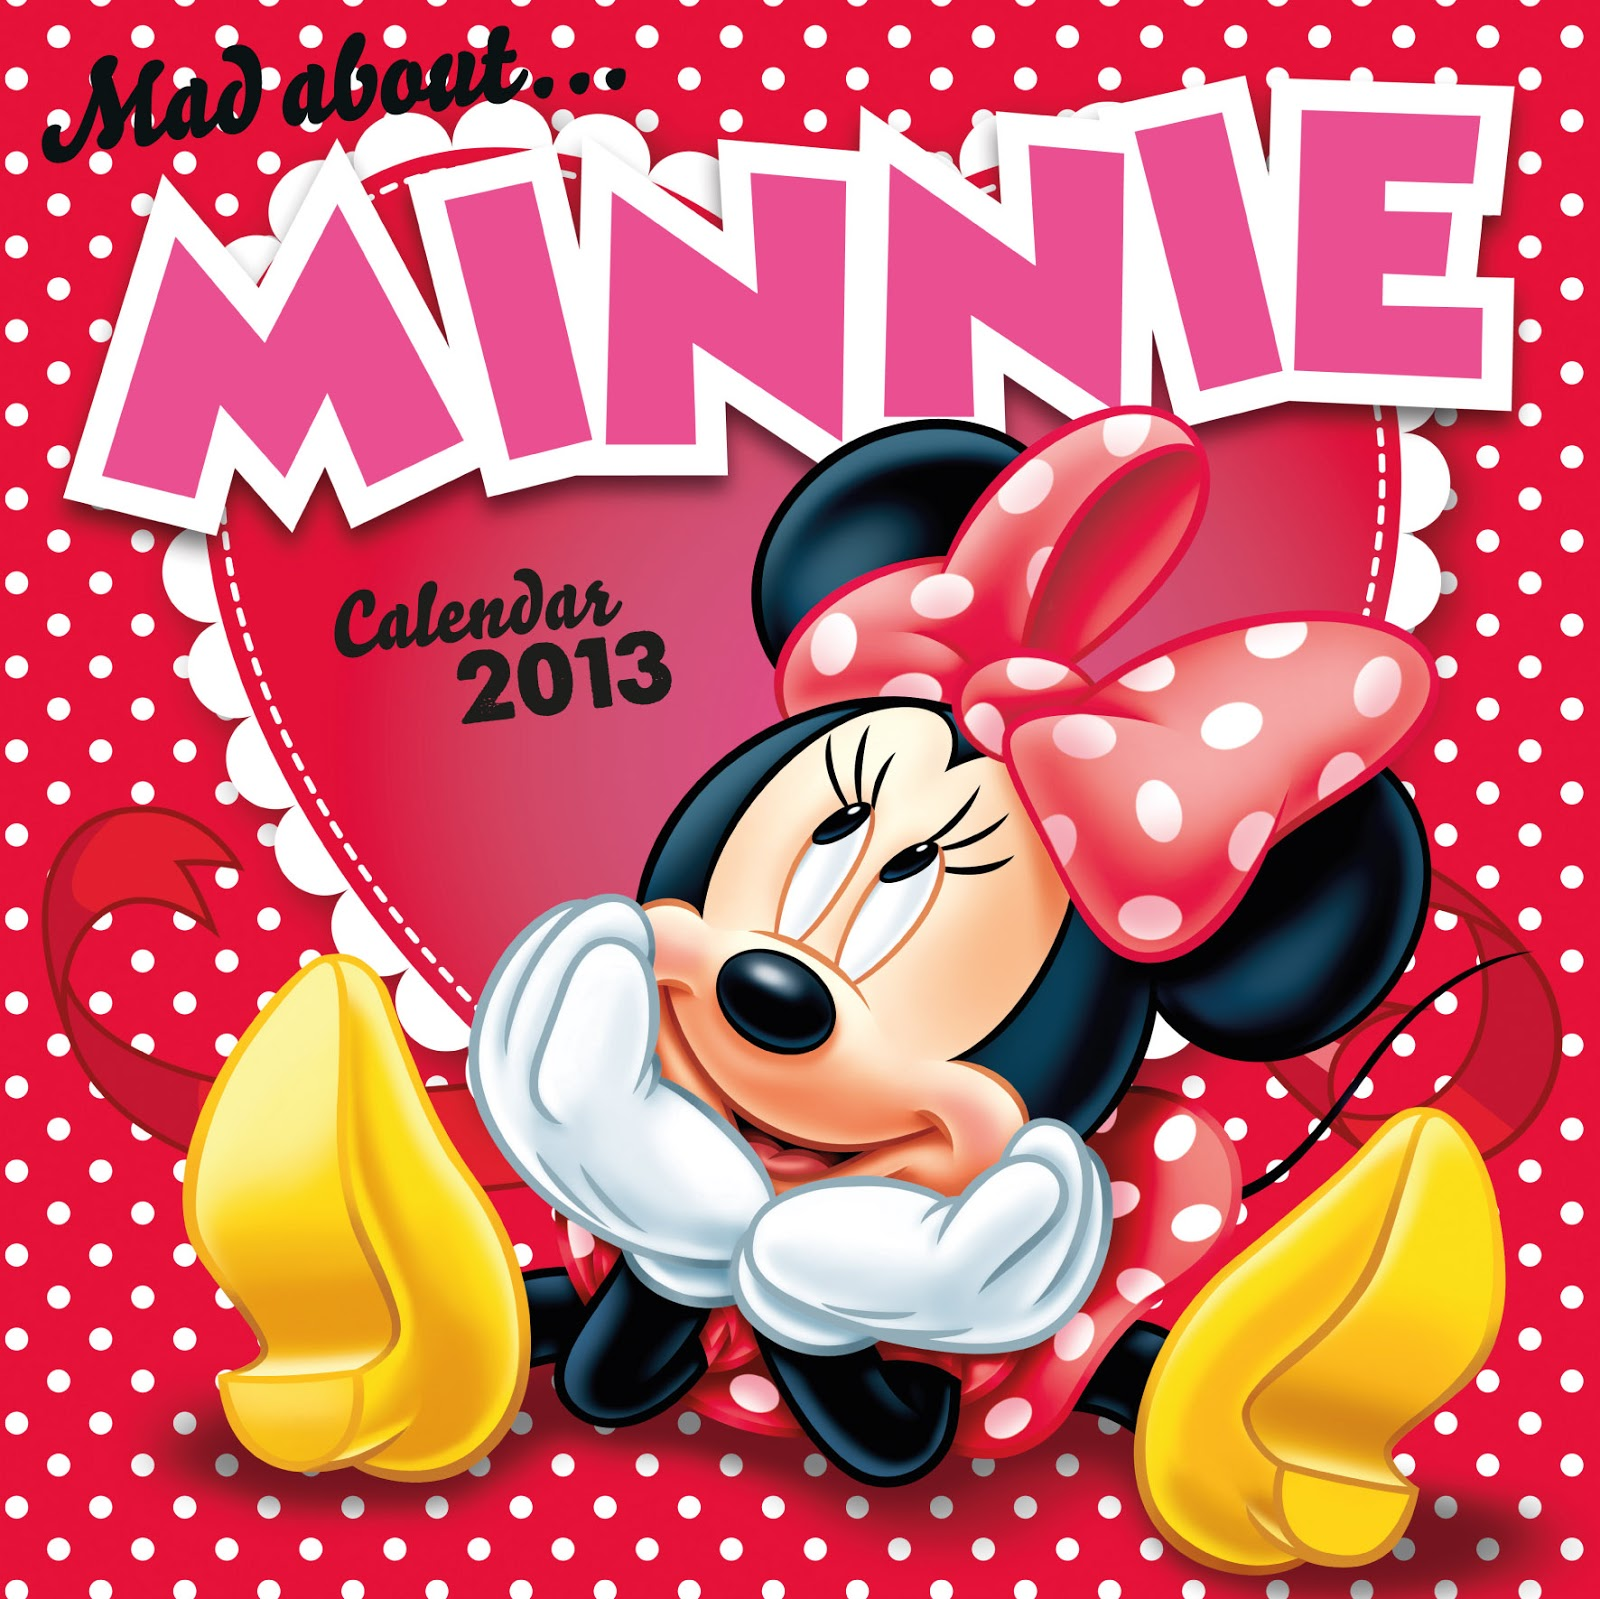 Minnie Mouse Wallpapers | HD Wallpapers Pics